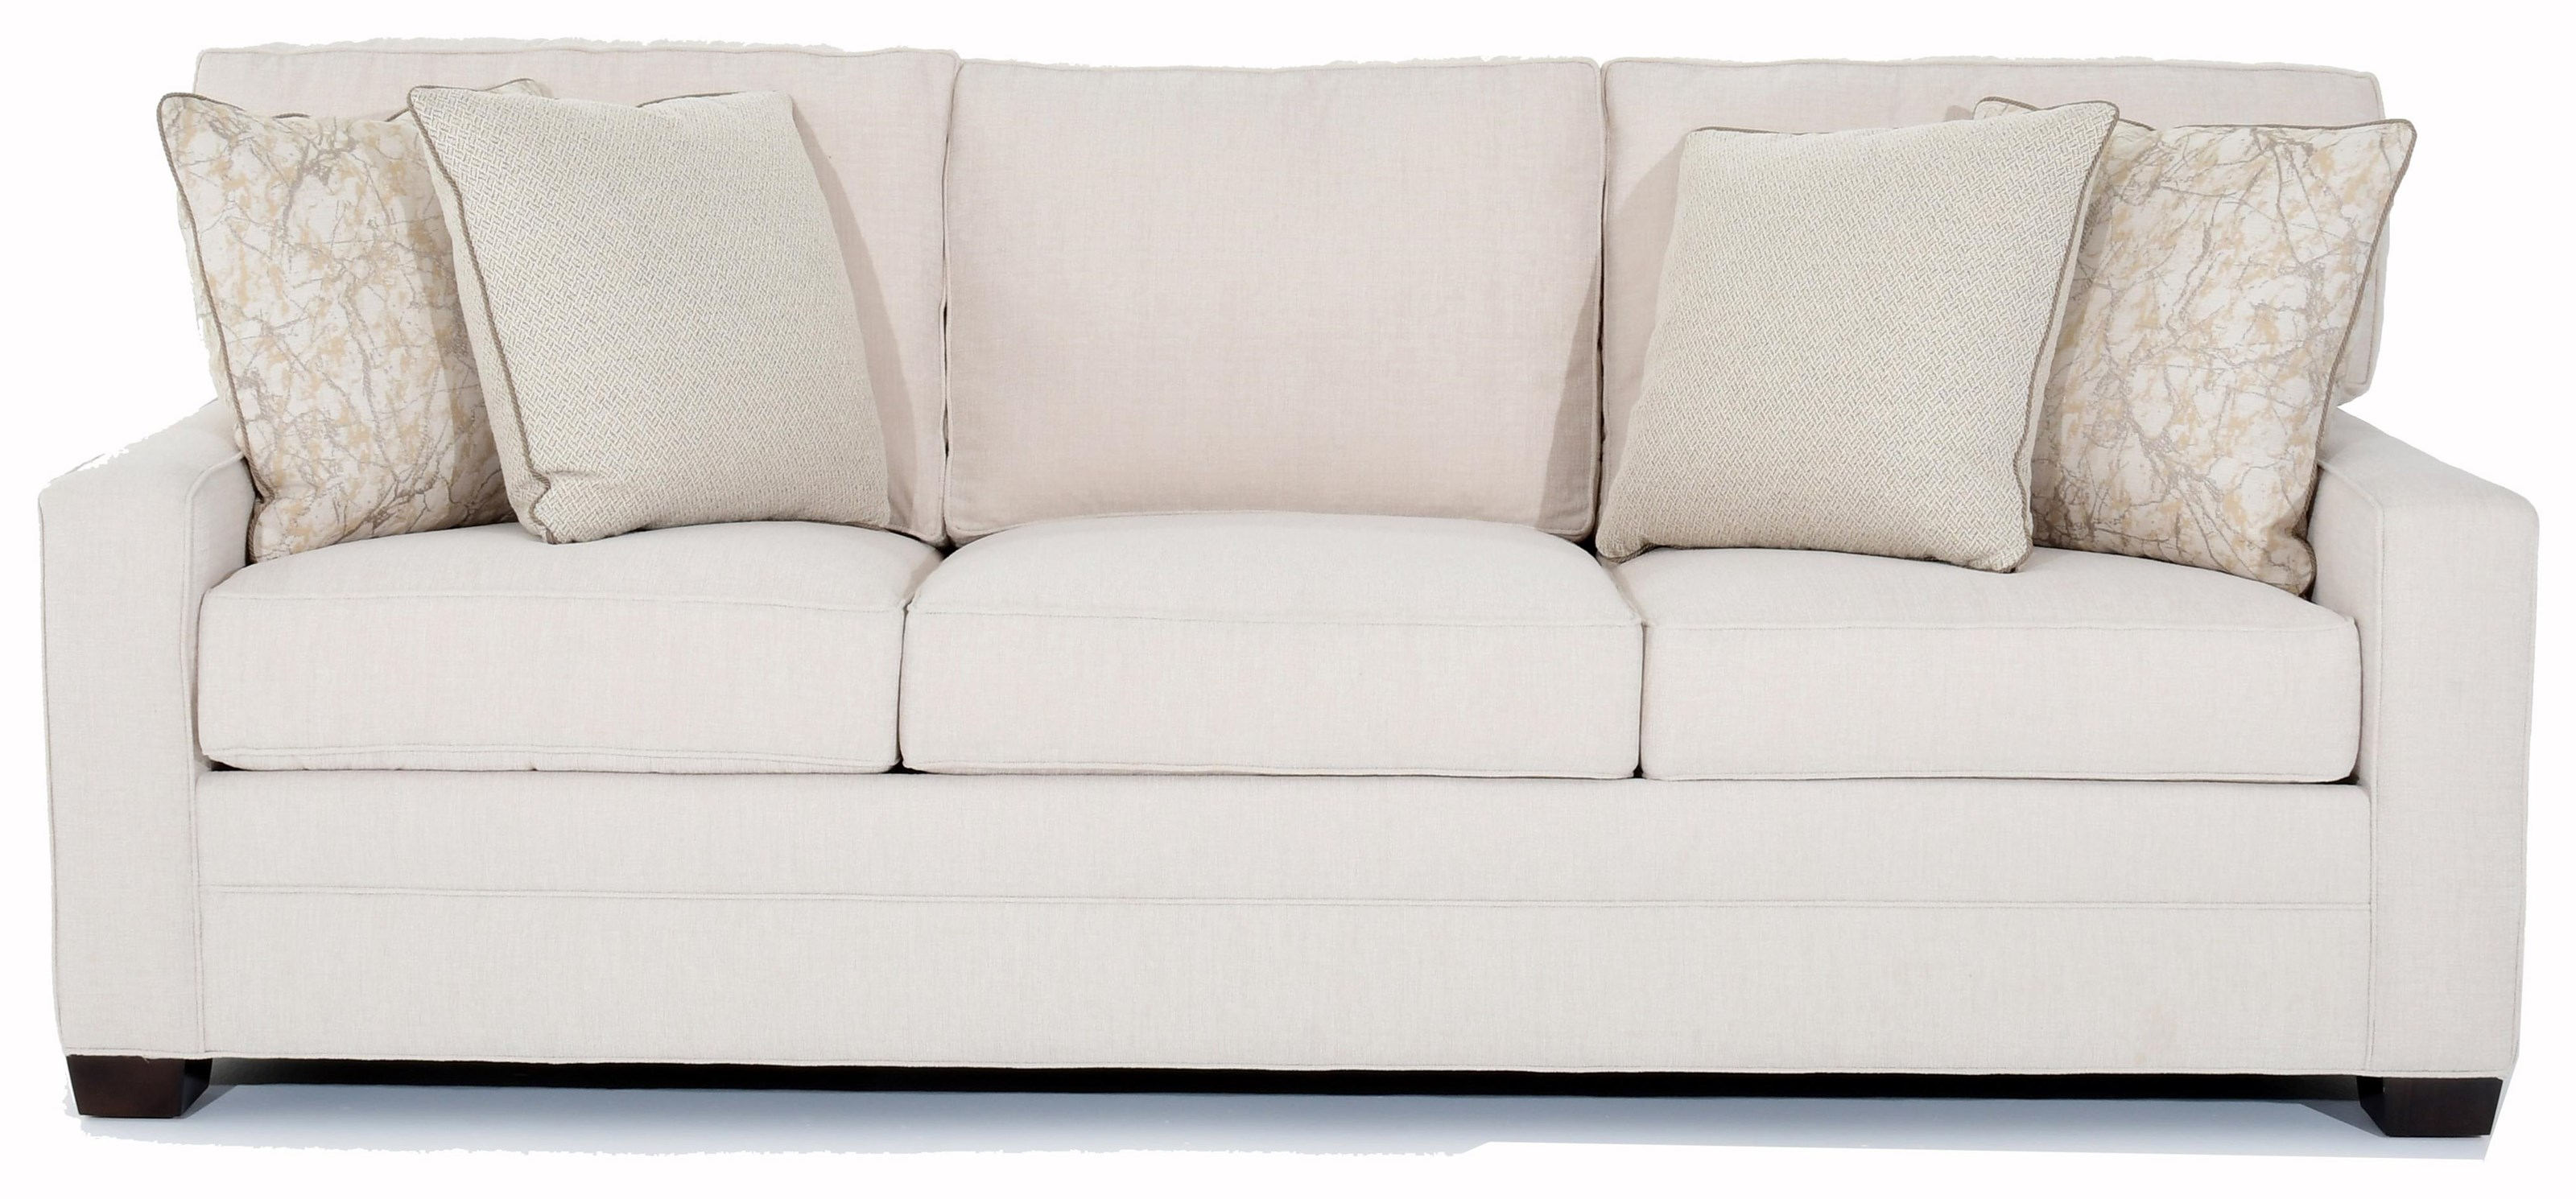 "2062 92"" Sofa by Huntington House at Baer's Furniture"